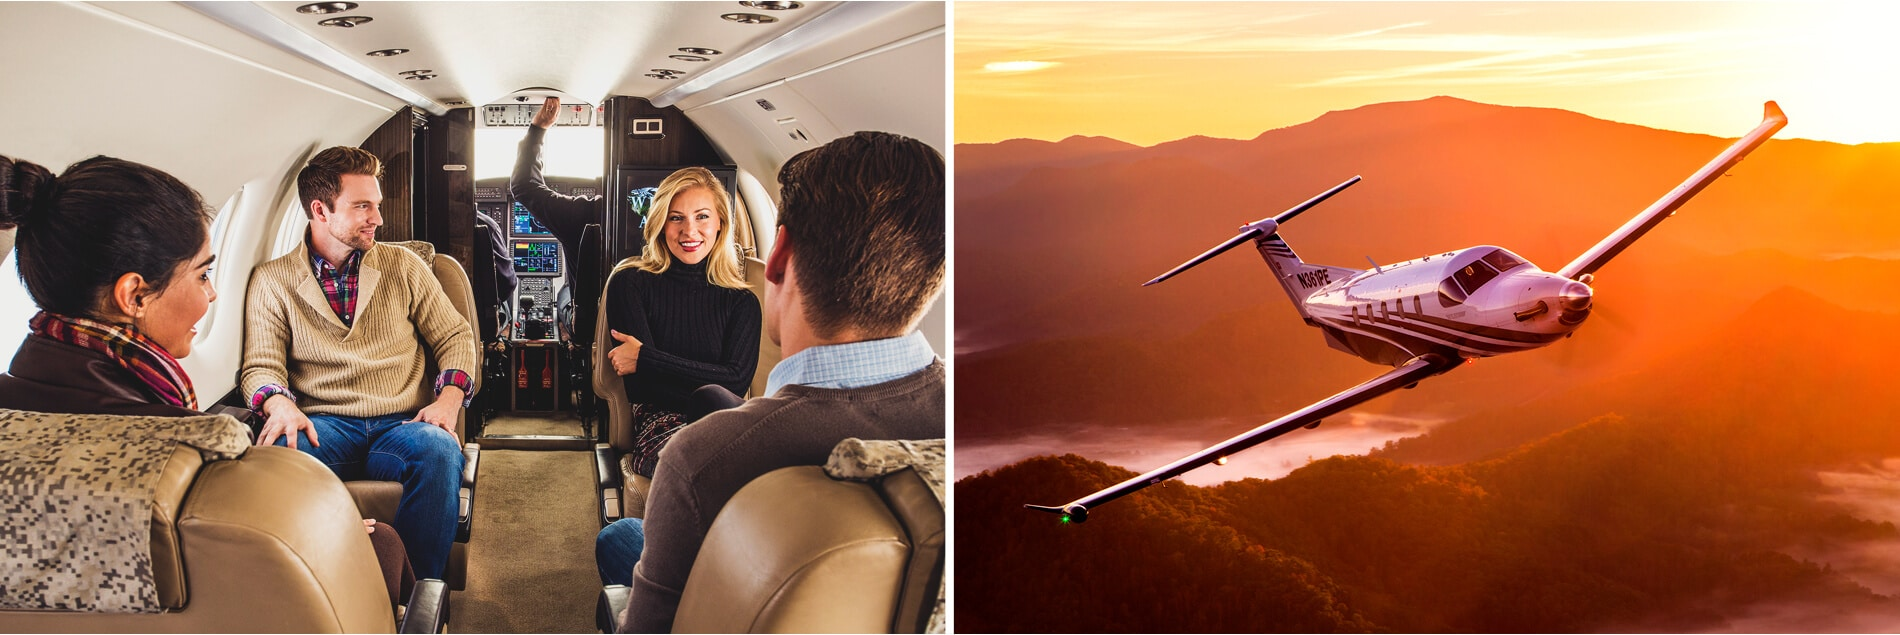 Pilatus PC-12 Interior with People Onboard